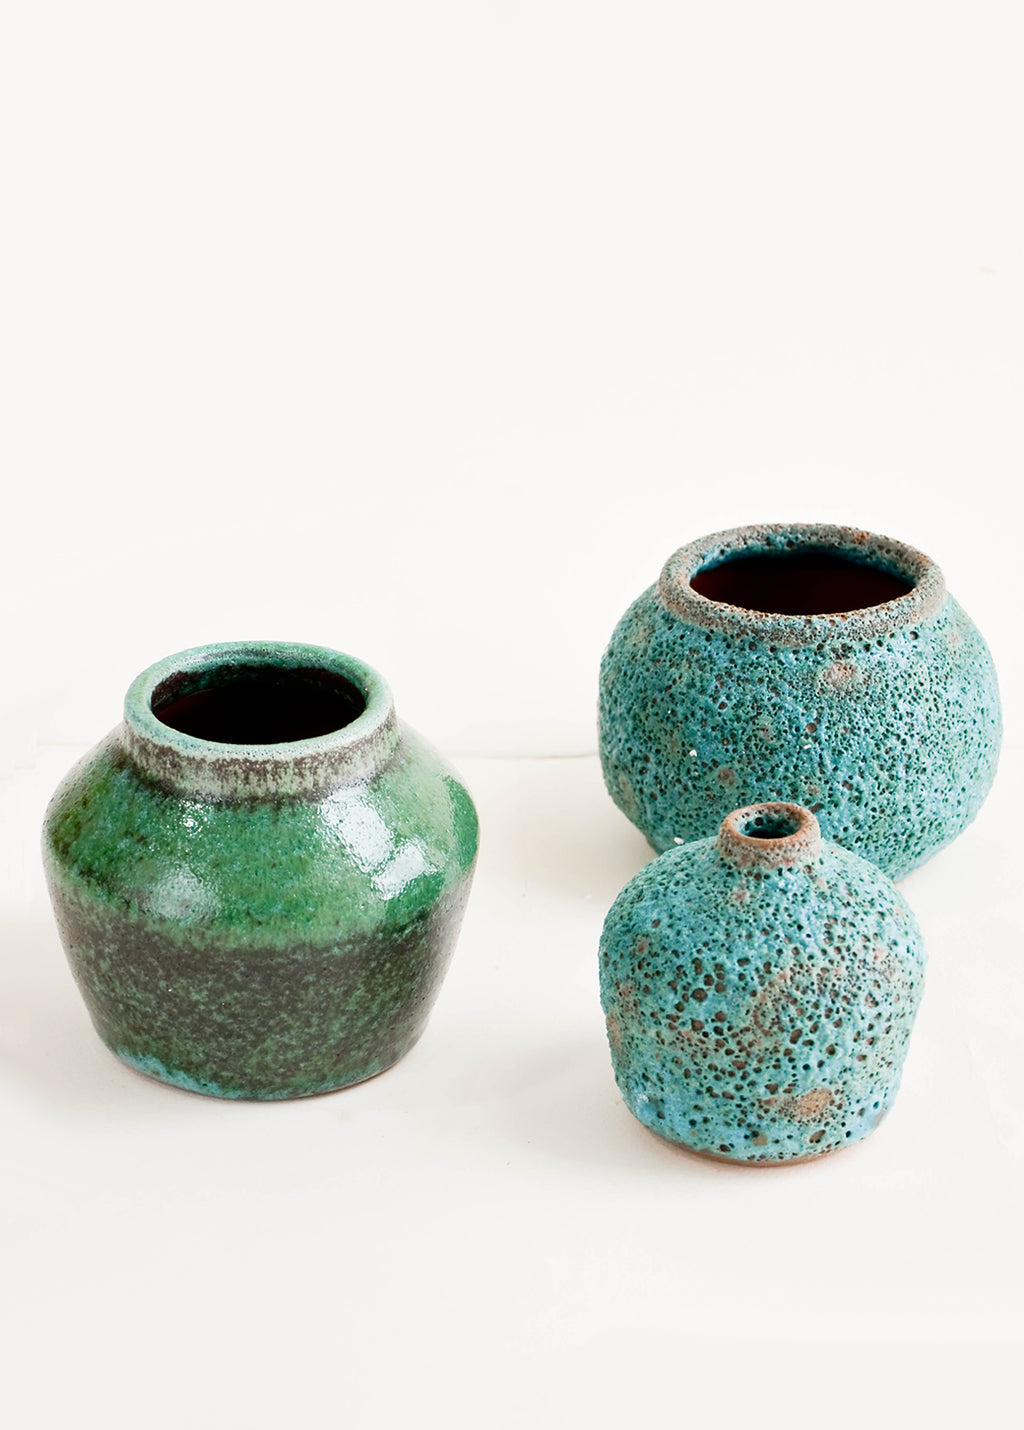 2: Group of three vases in heavily textured turquoise glazes